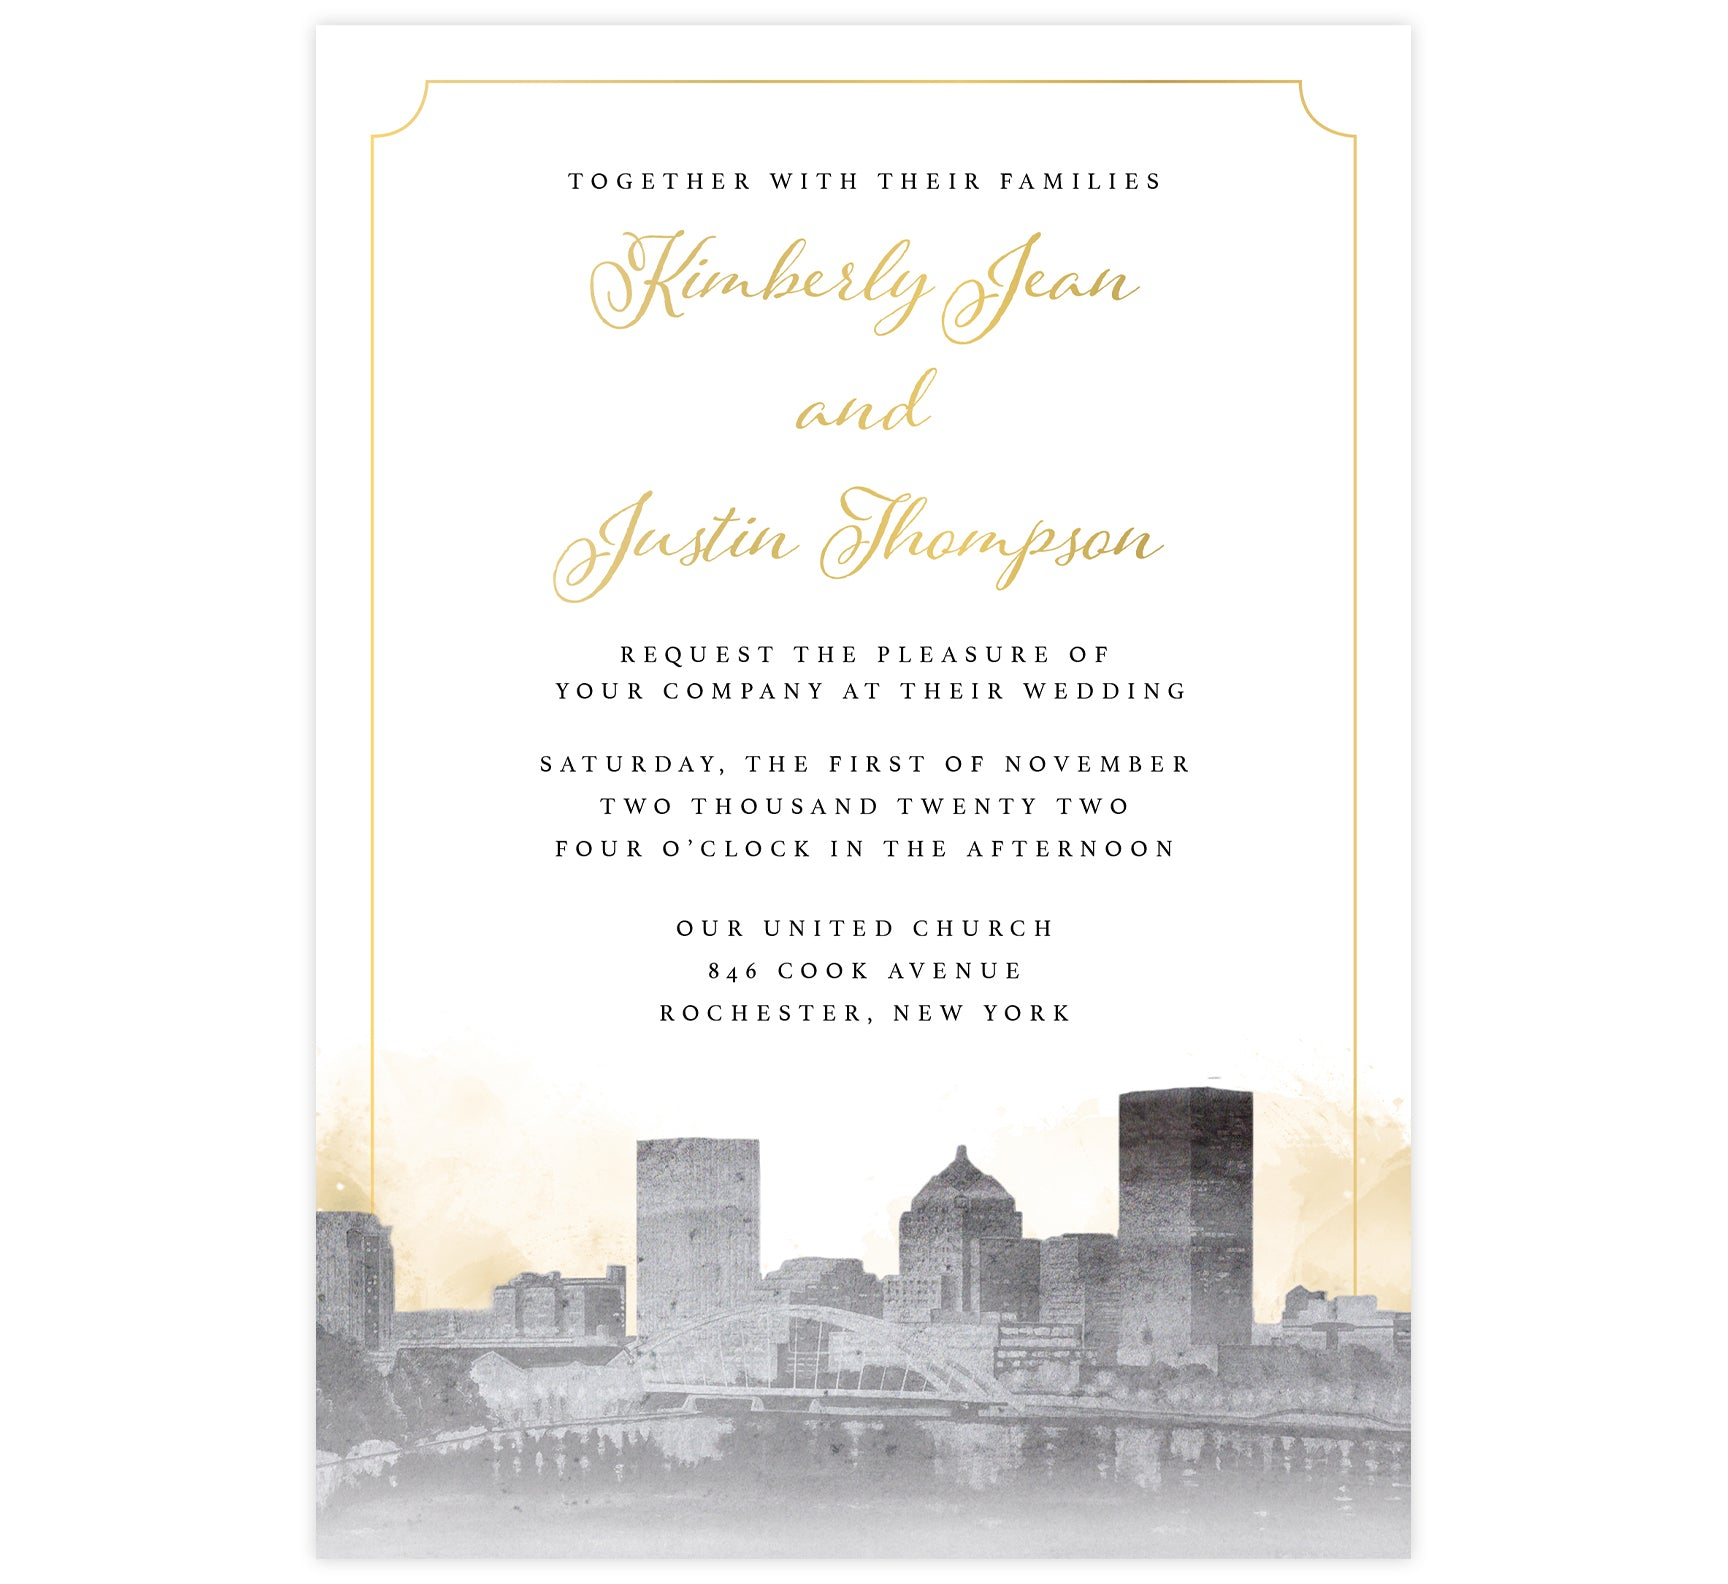 Elegant Skyline wedding invitation; artistic version of the Rochester, NY skyline in grayscale with gold watercolor background and gold elegant frame around the card.